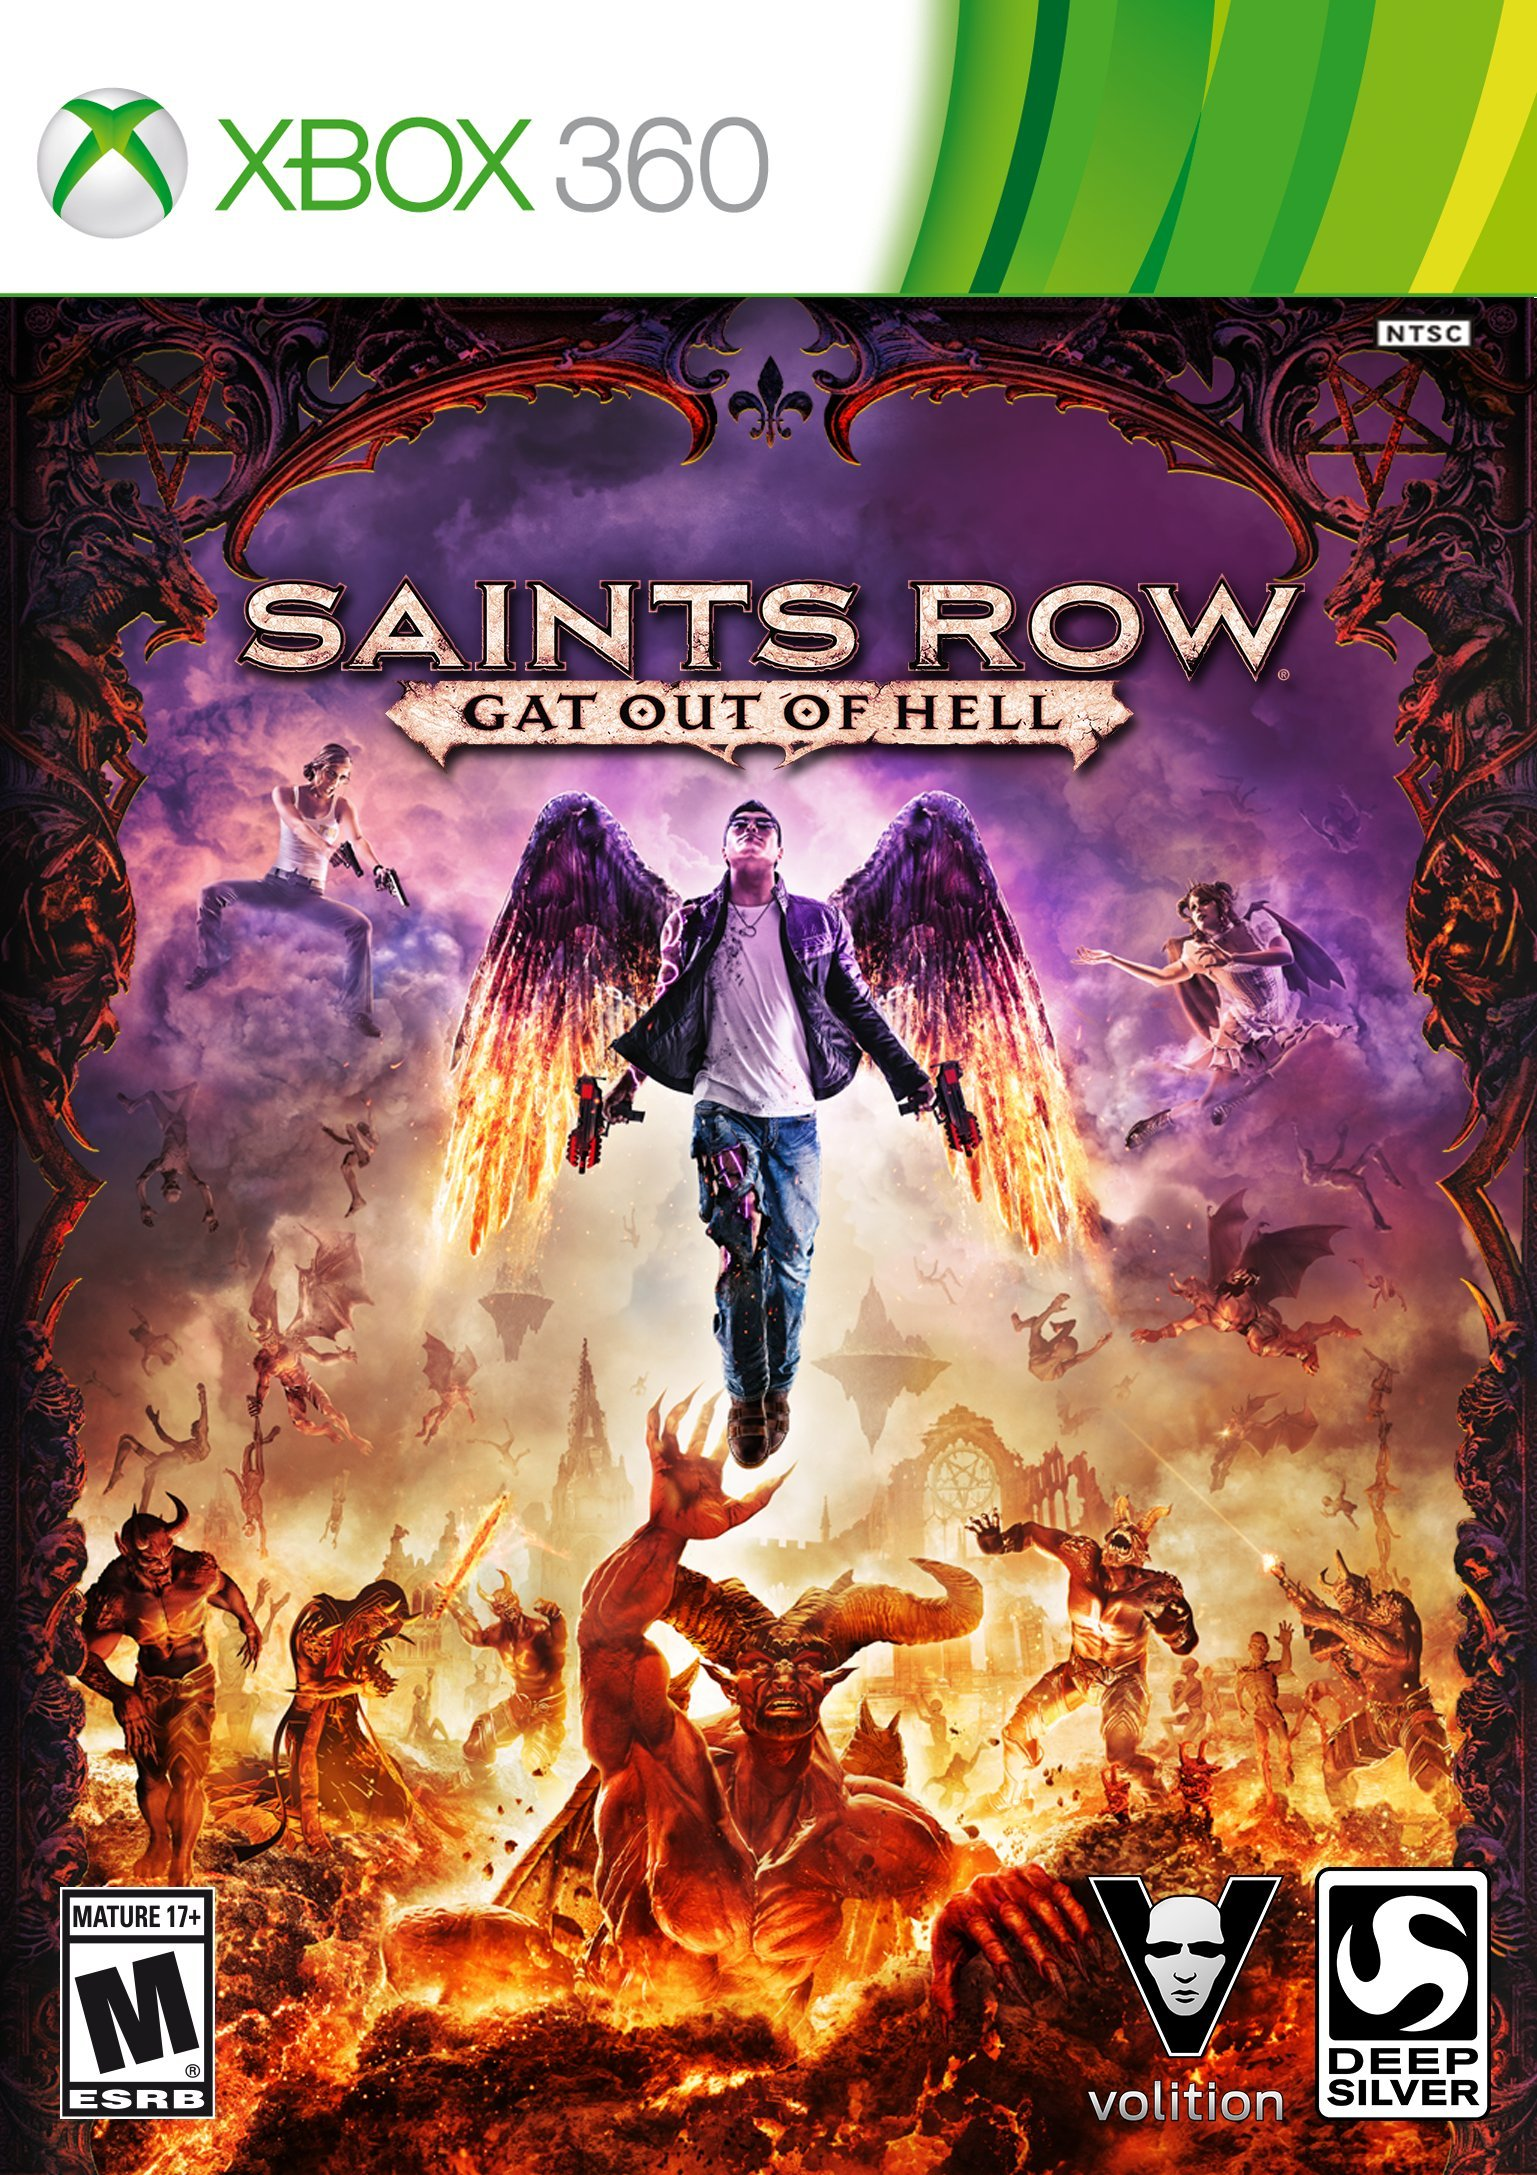 dating in saints row Gamespot is the world's leading source for ps4, xbox one, ps3, xbox 360, wii u, ps vita, wii, pc, 3ds, and ds video game news, reviews, previews, trailers, walkthroughs, and.